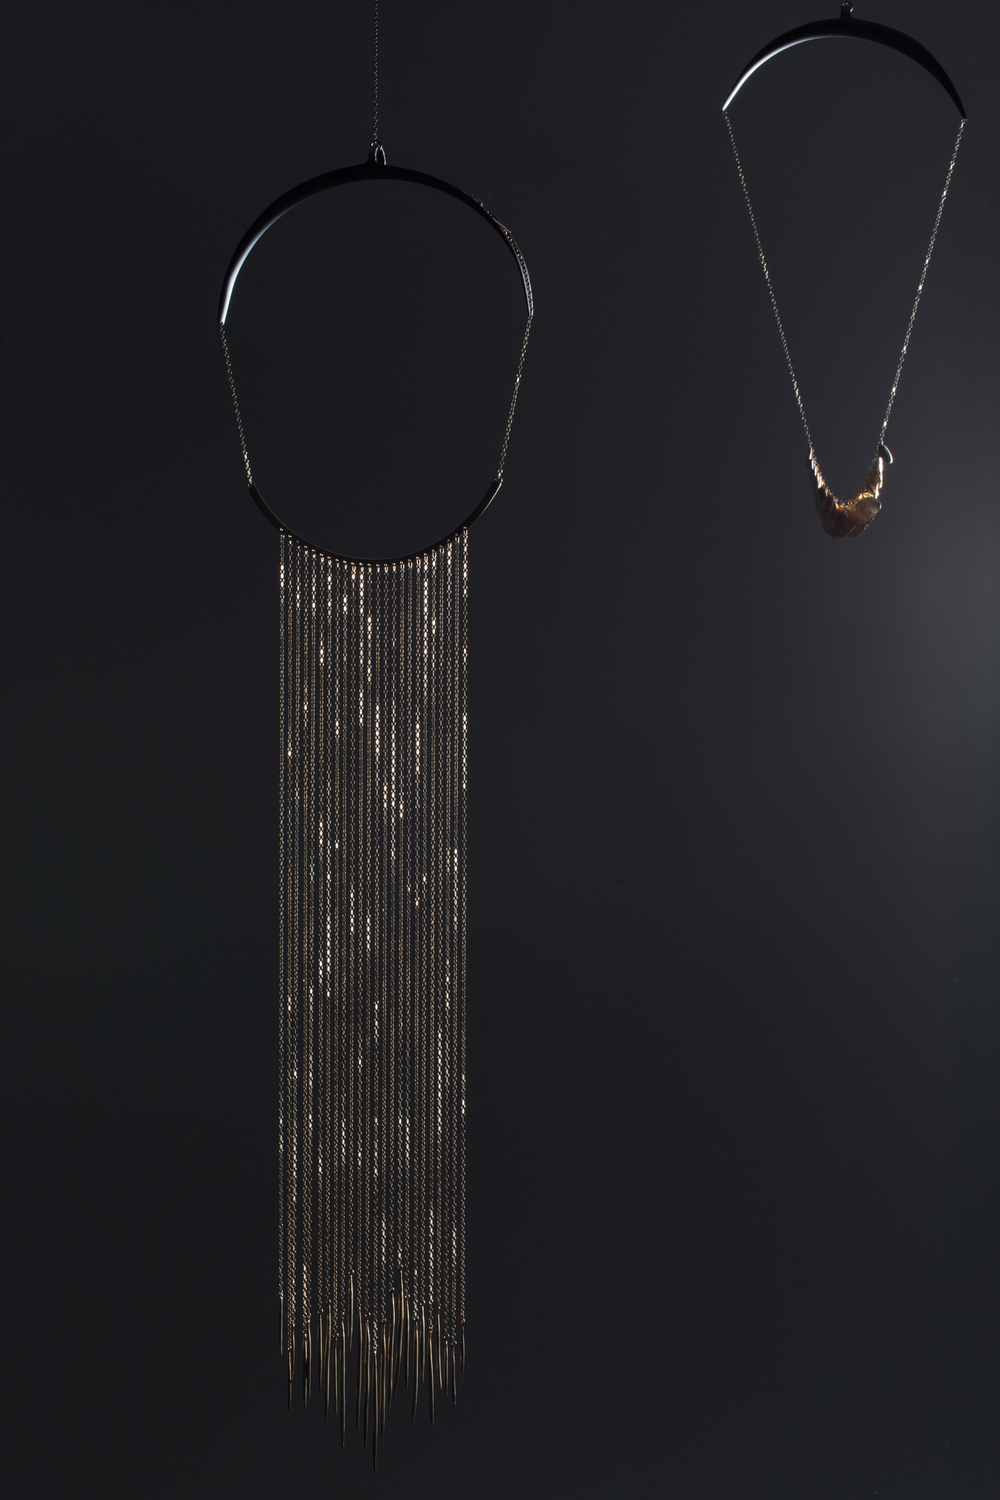 Gold Tuxedo necklace, left, $7,900; Shady Side gold necklace with polished gold fungus, right, $4,900.